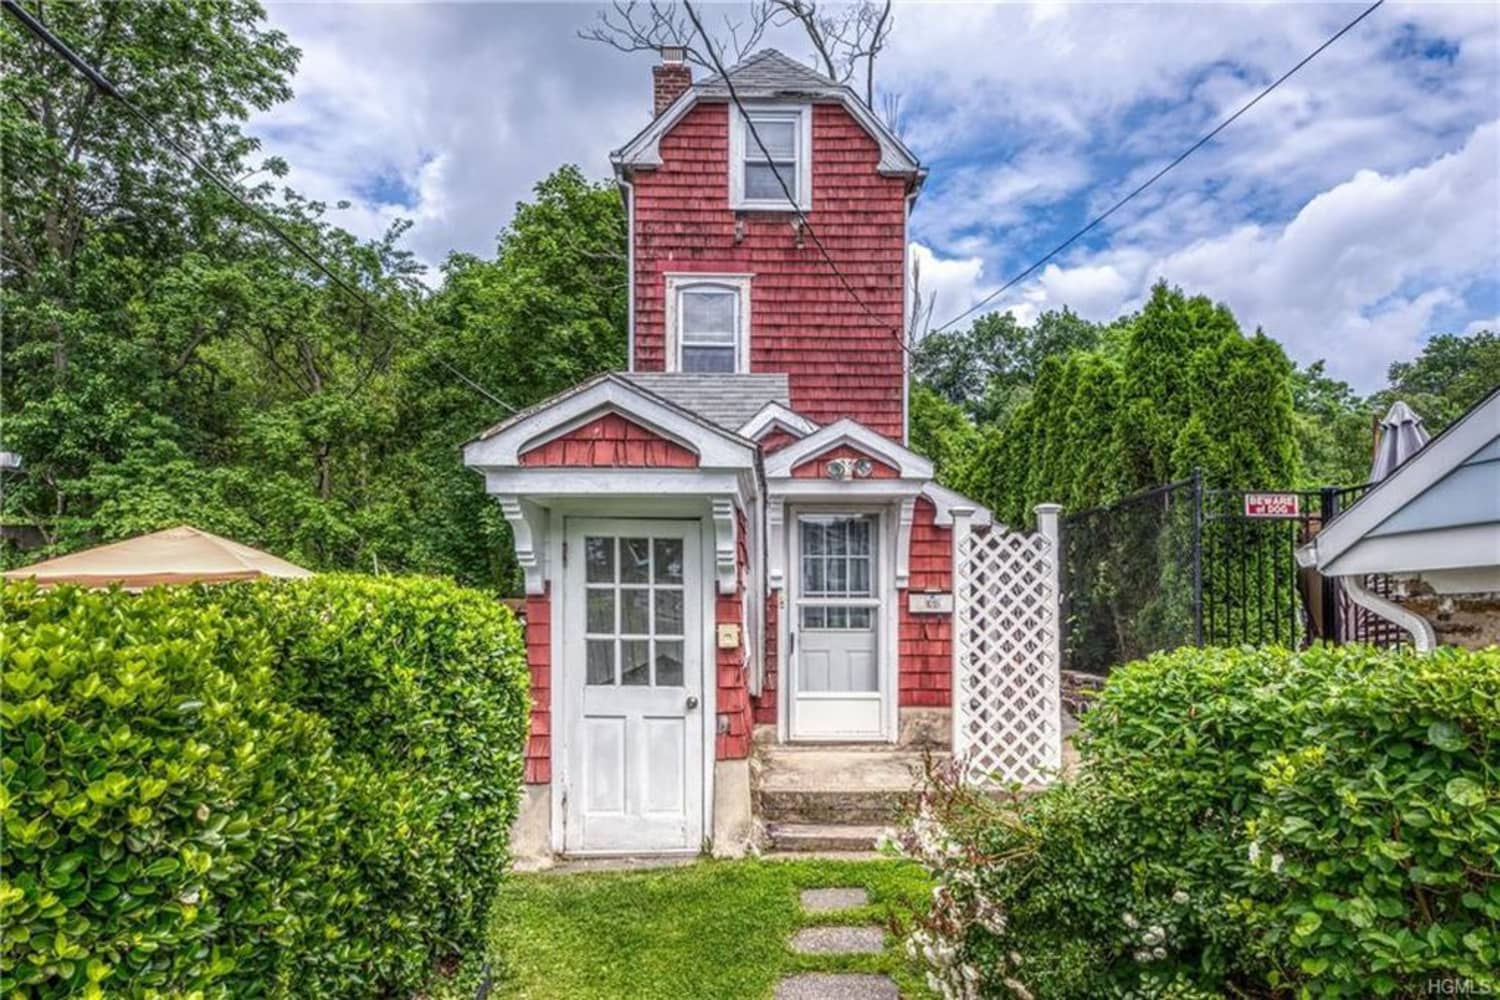 This Skinny House That's Just 10 Feet Wide Is for Sale in New York